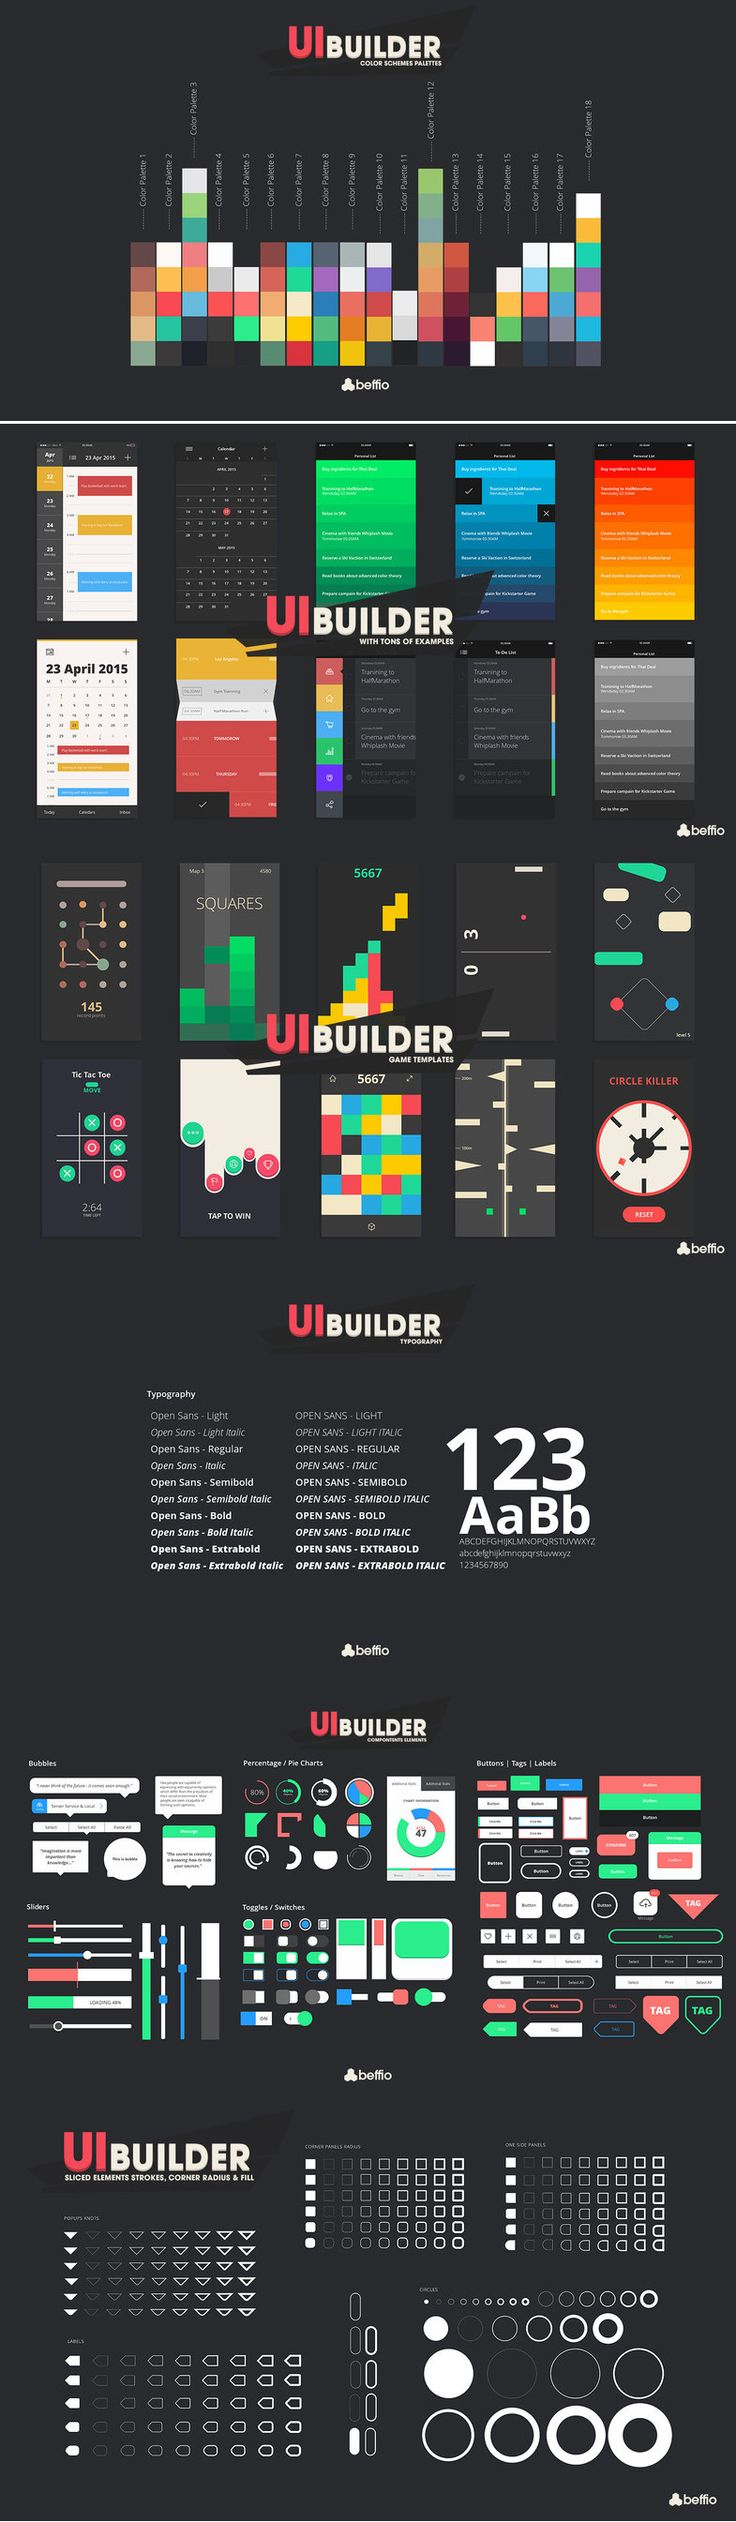 UI - Builder Do you need core UI Elements to start building your first Game or App? Are you a professional and want to speed up your workflow? No matter your experience, we have EXACTLY what you need!  » Unity Awards 2015 Finalist »200+ Sliced Elements | 130+ Pixel Perfect Icons | 1 Font with 10 Styles | 70+ drag'n'drop components | 30+ Classic App. Unity Game Asset.